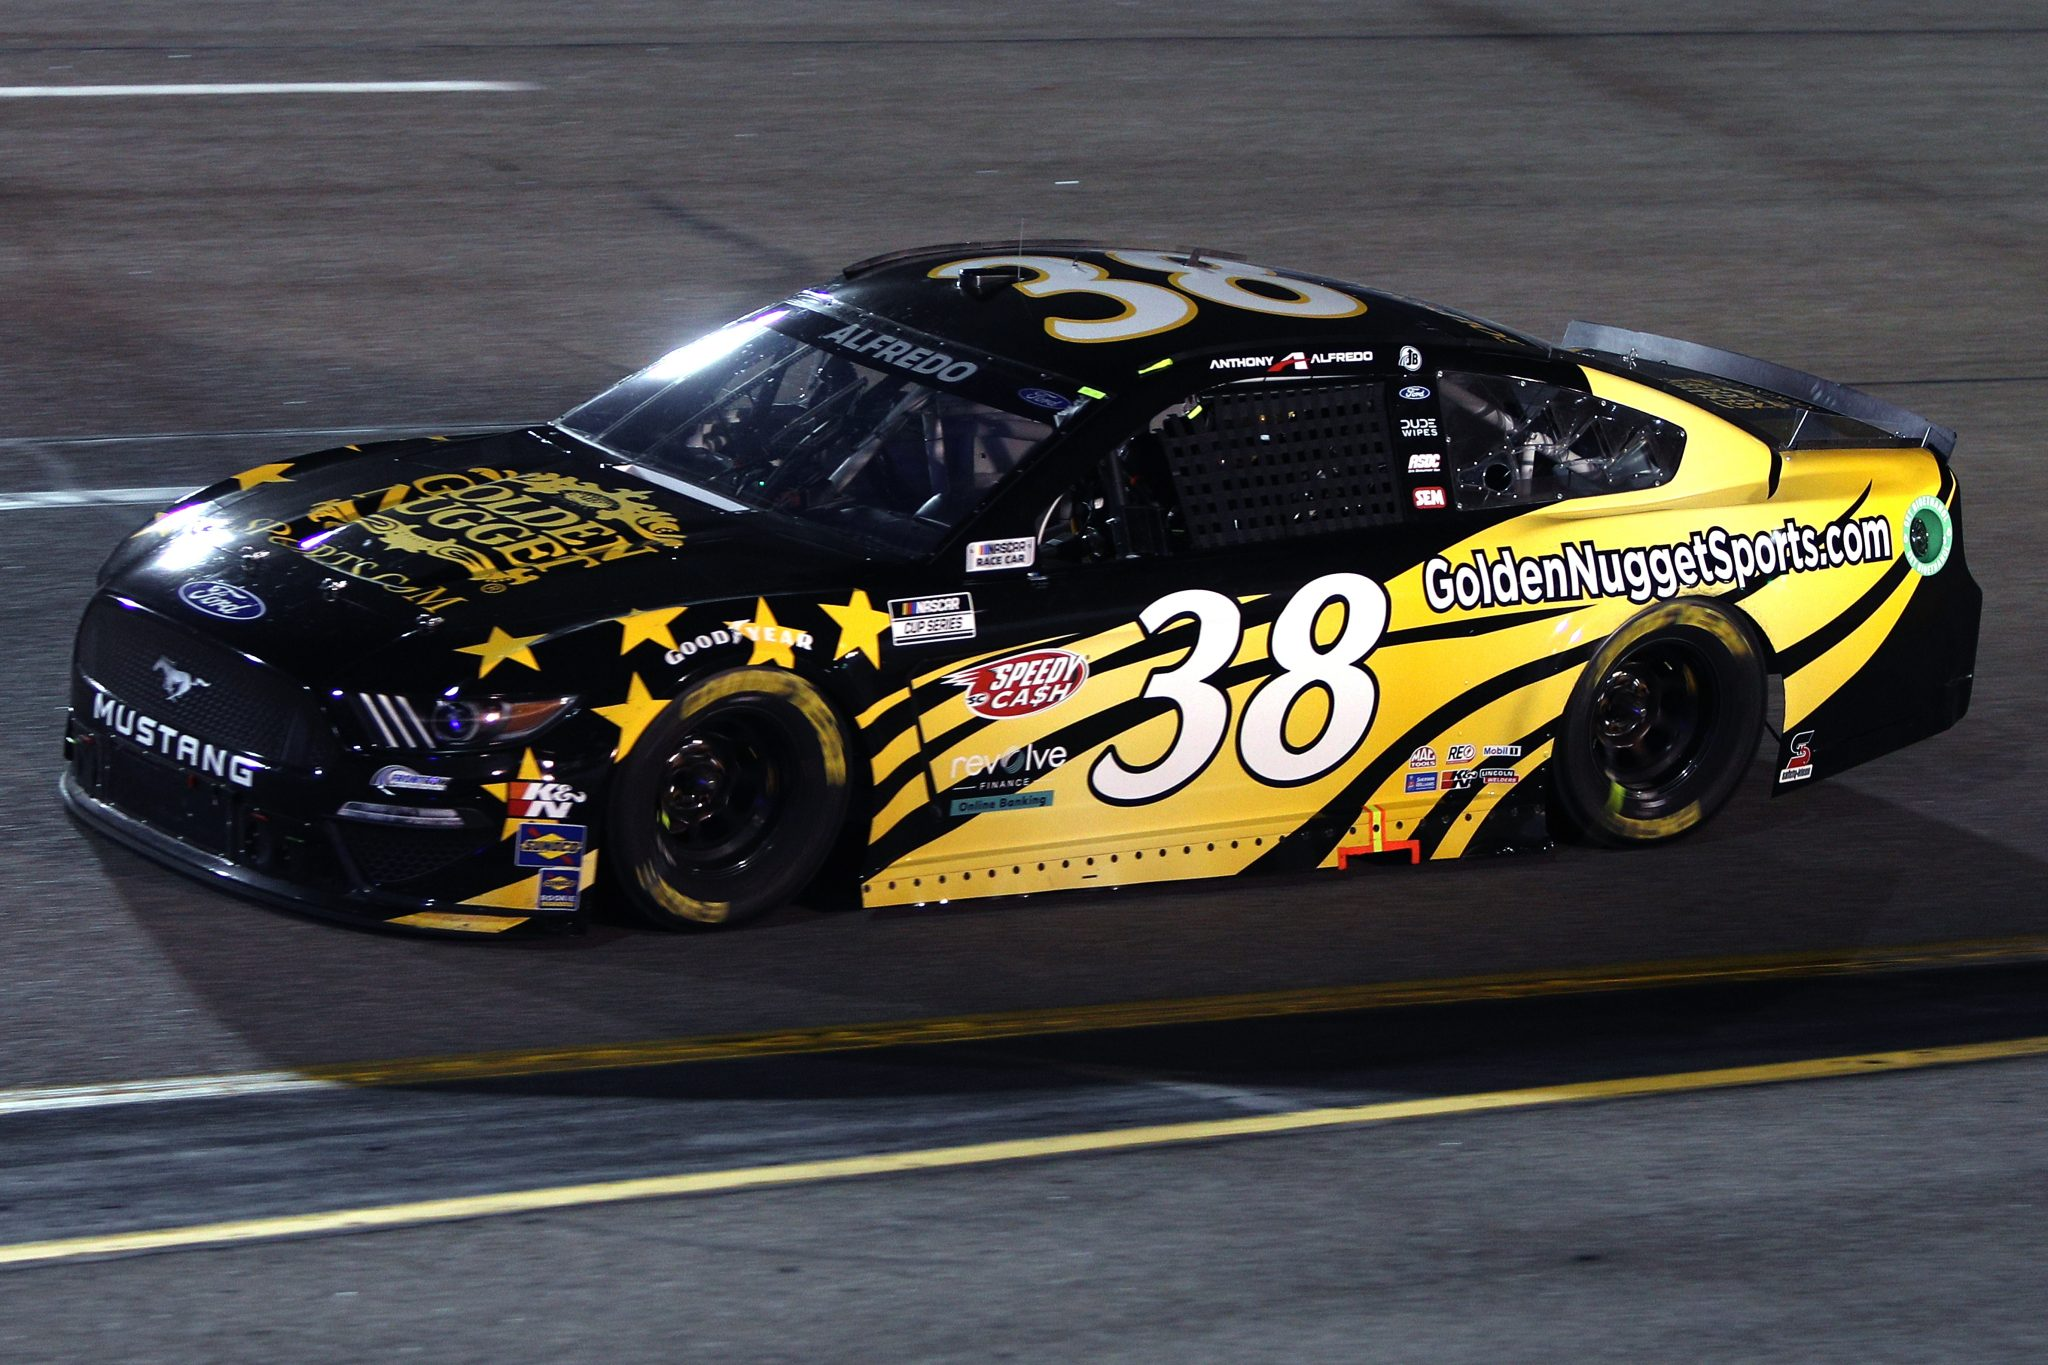 RICHMOND, VIRGINIA - SEPTEMBER 11: Anthony Alfredo, driver of the #38 GoldenNuggetSports.com Ford, drives during the NASCAR Cup Series Federated Auto Parts 400 Salute to First Responders at Richmond Raceway on September 11, 2021 in Richmond, Virginia. (Photo by Sean Gardner/Getty Images)   Getty Images